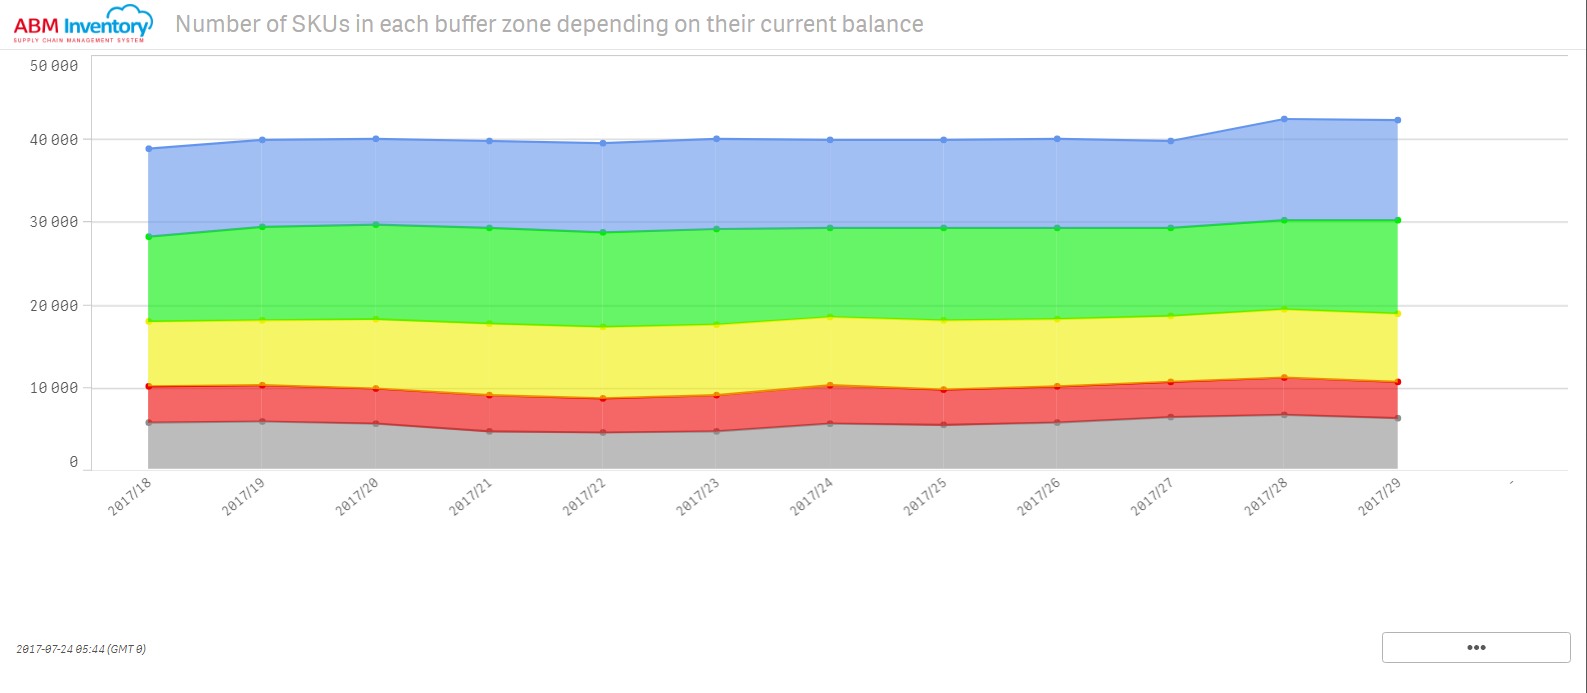 View the number of SKUs by buffer zones depending on their current balance